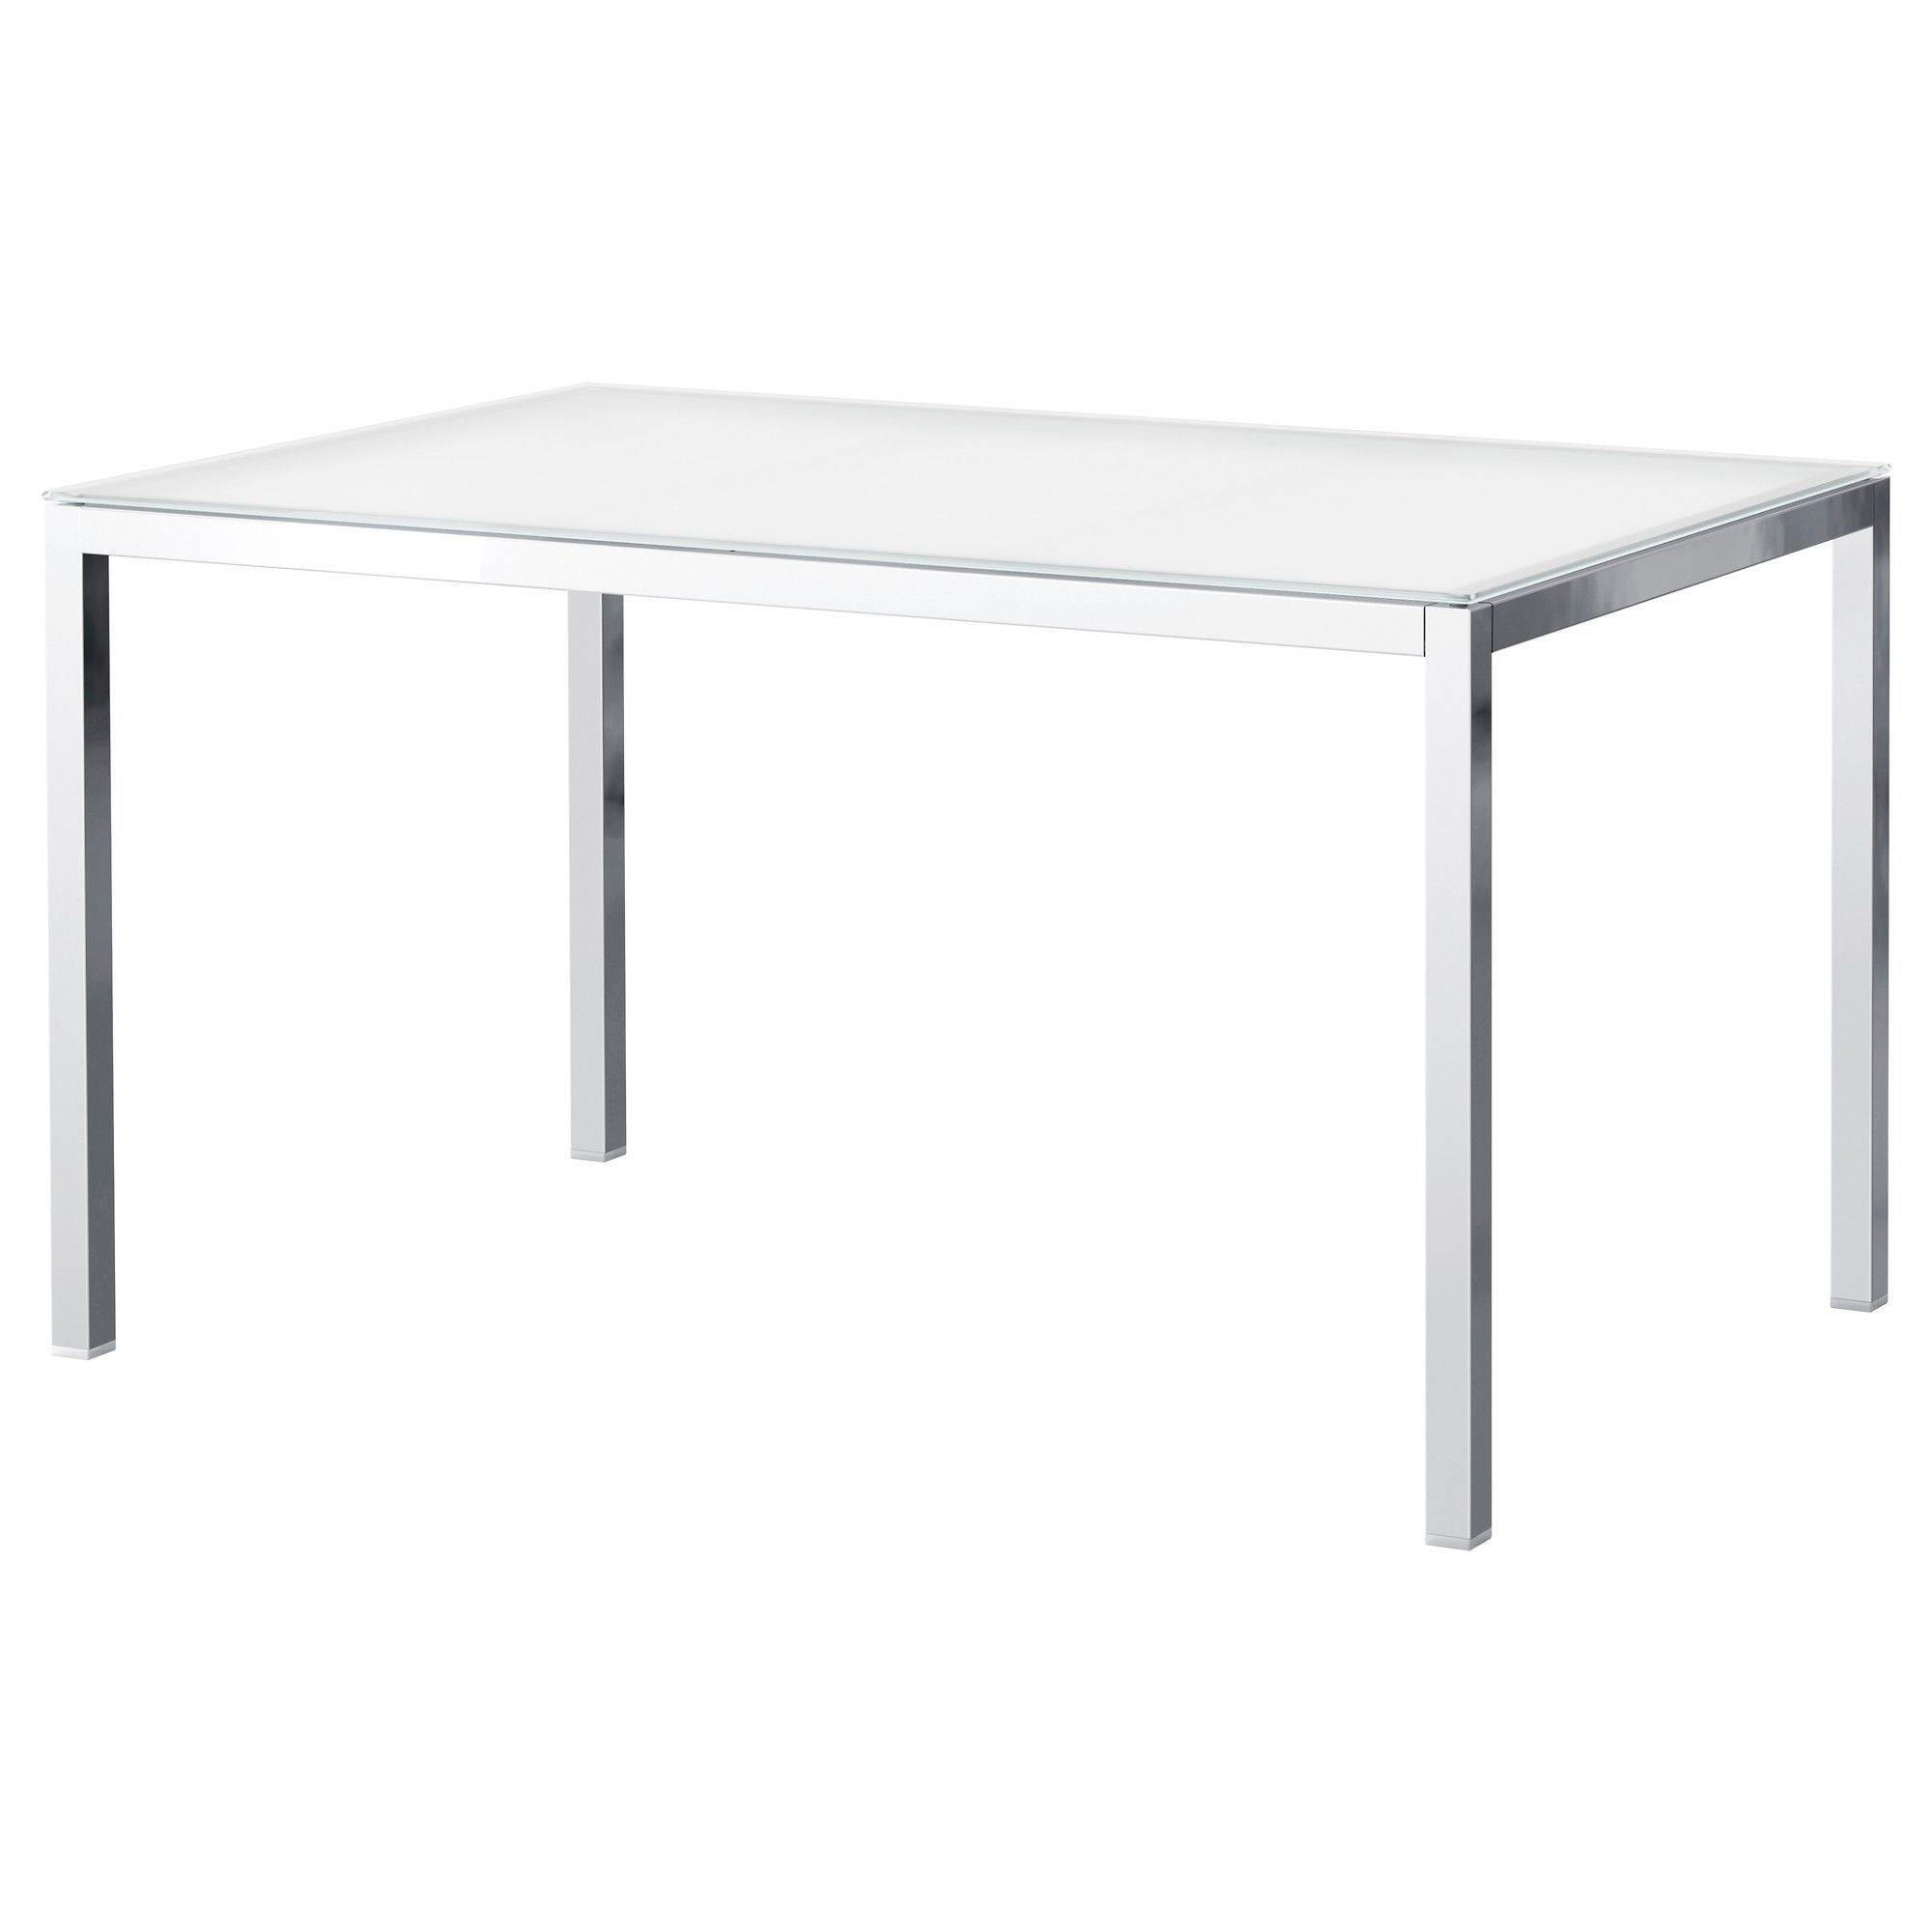 Torsby Table Chrome Plated Glass White  Chrome Plating Captivating Glass Dining Room Table Ikea Review